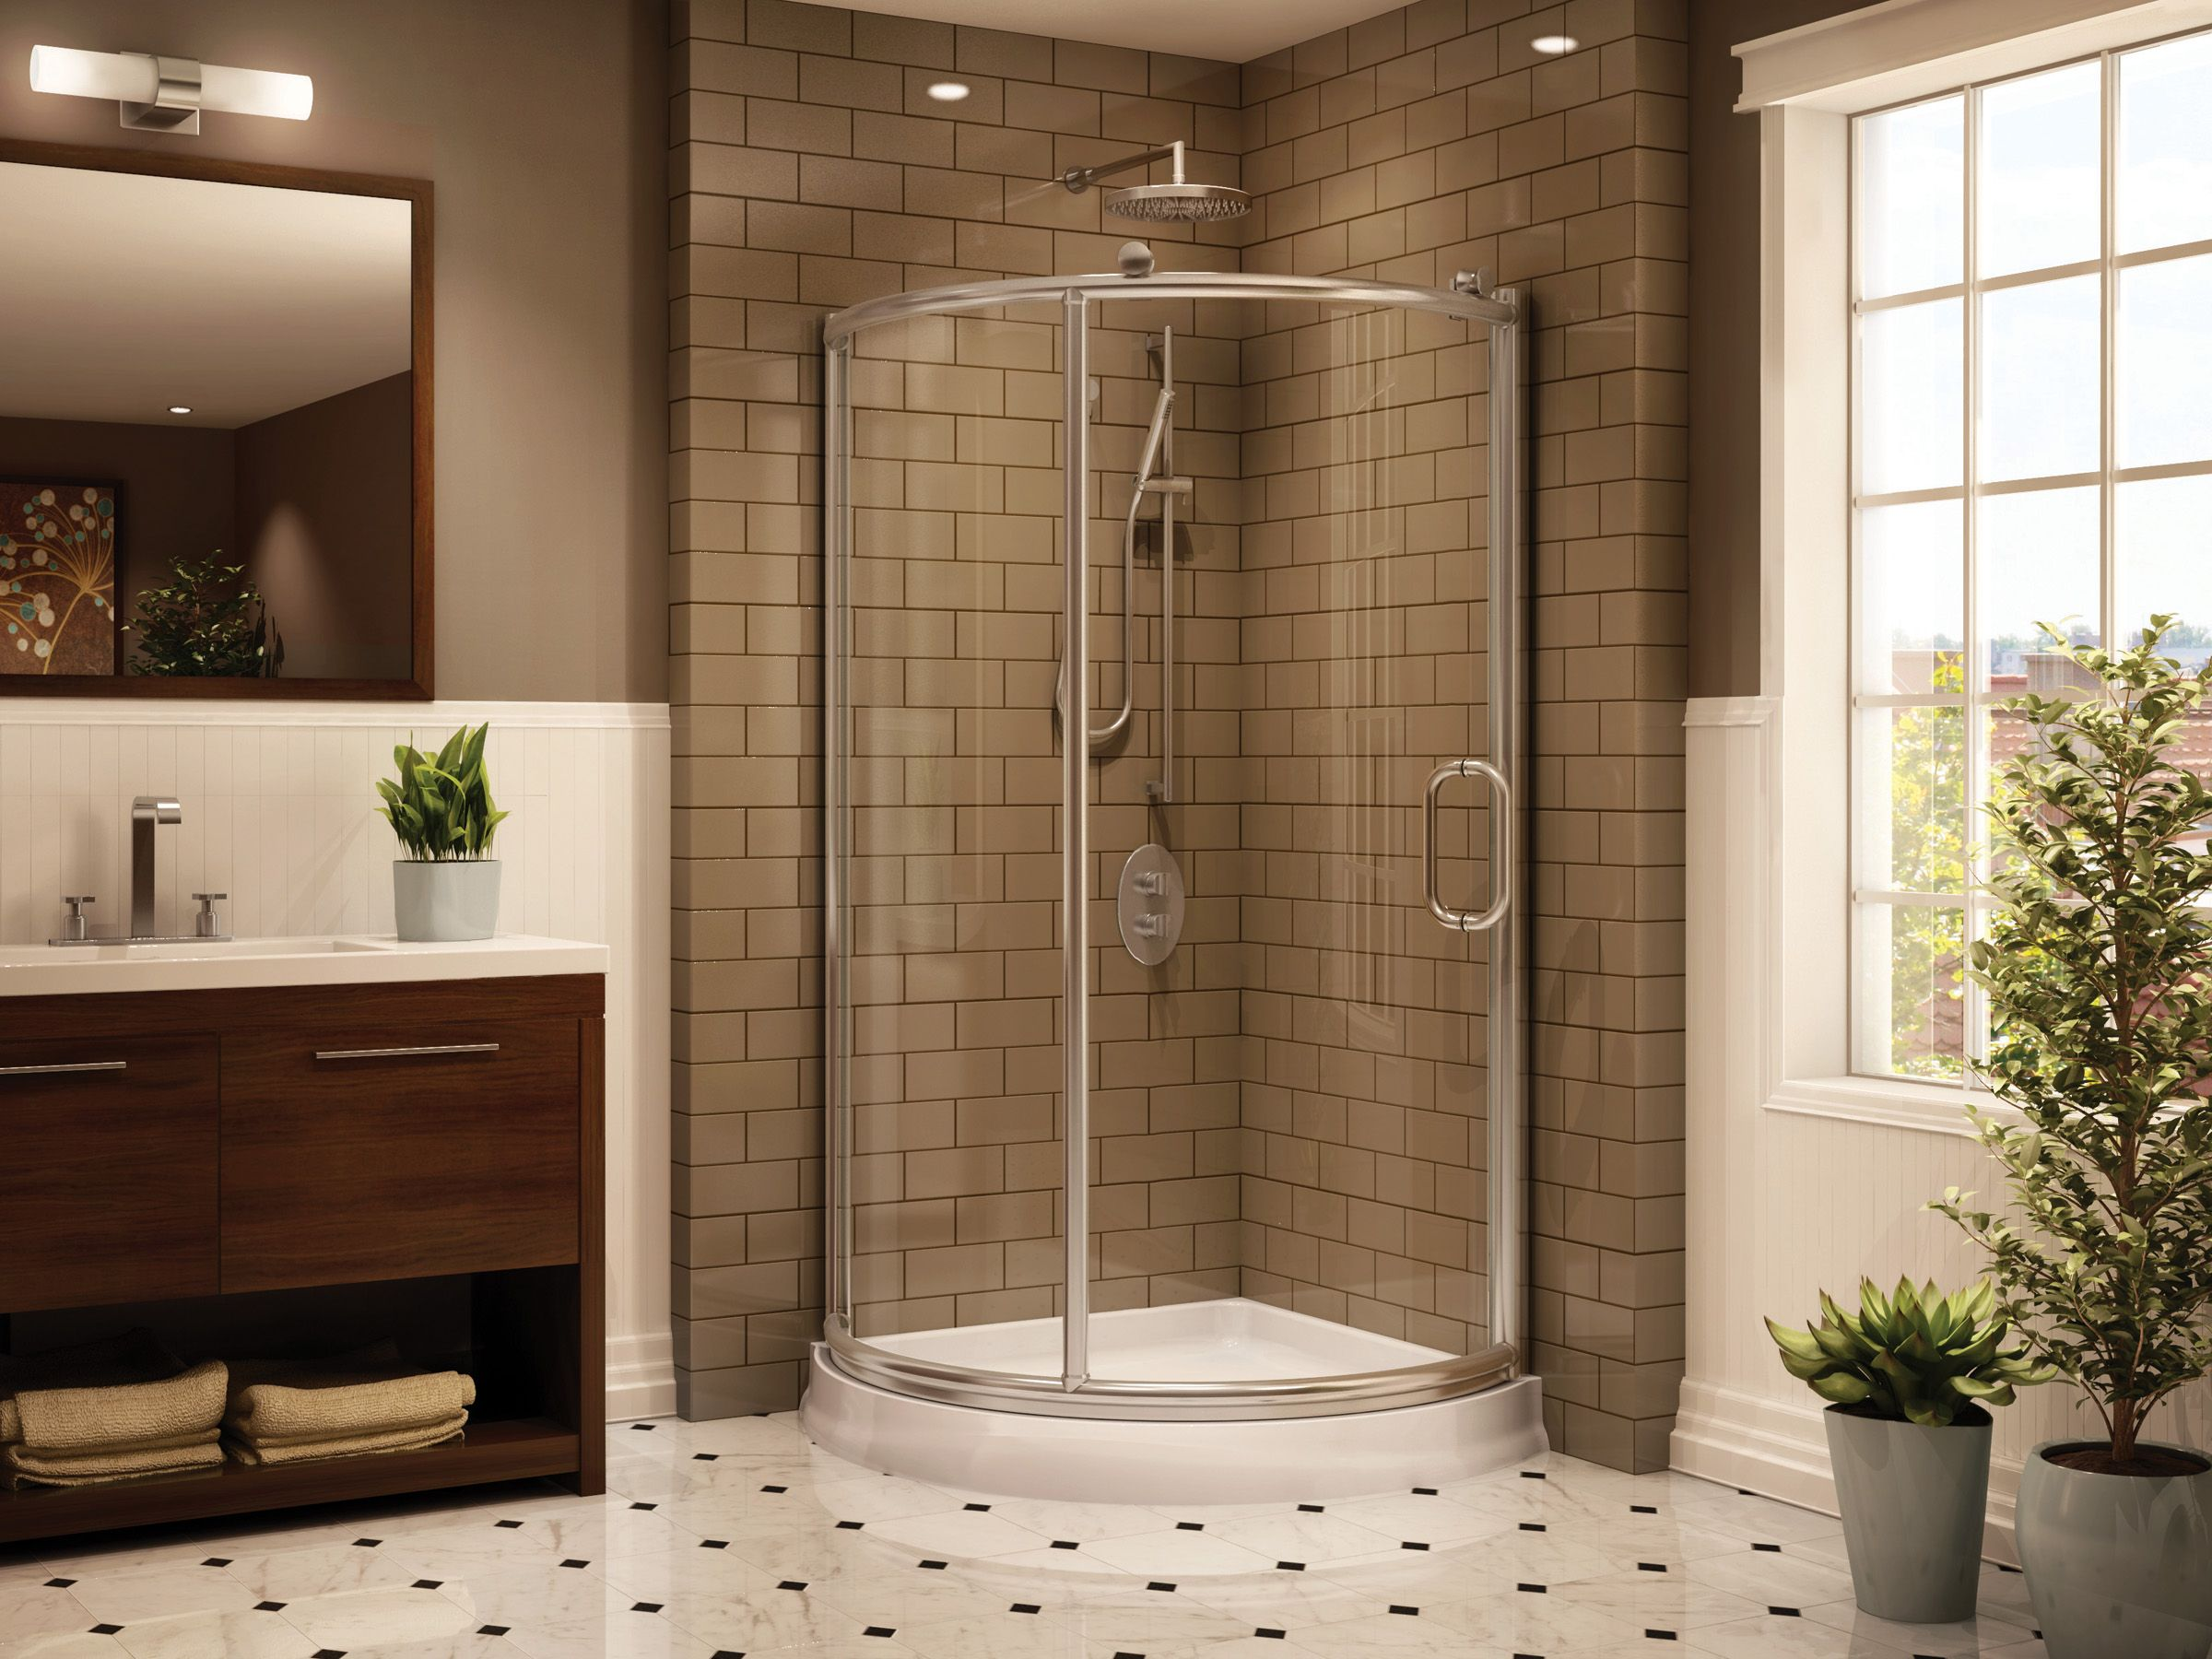 Amazing Bathroom Ideas For Small Space With Cool Corner Shower